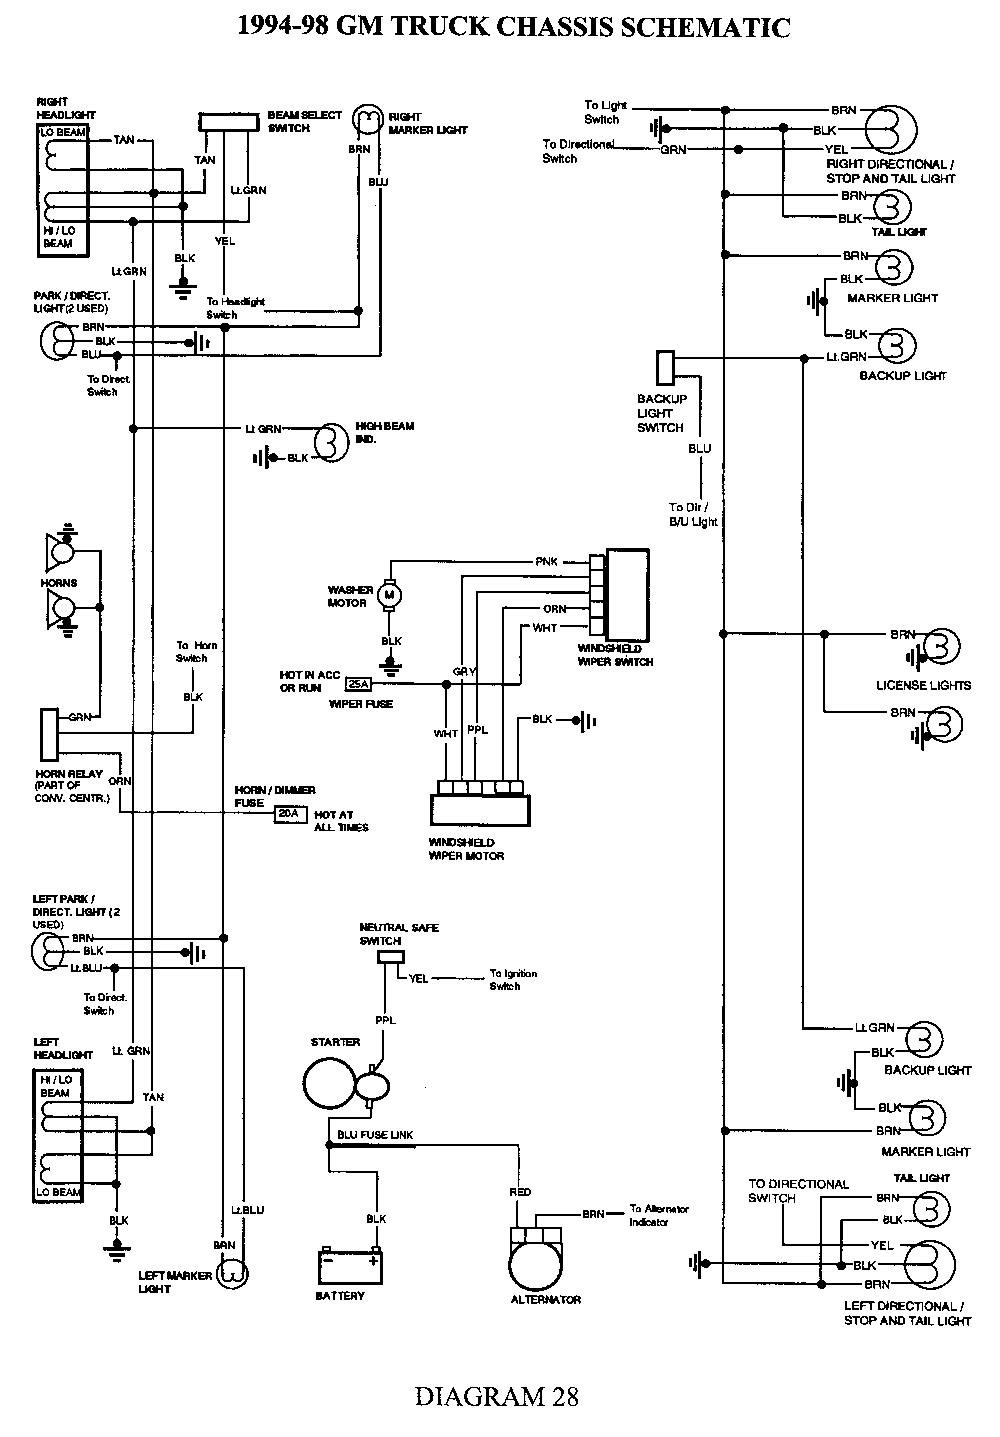 Dodge Tail Light Wiring Harness Wiring Diagram Used 1998 Dodge Ram Tail Light Wiring Diagram 1998 Dodge Ram Tail Lights Wiring Diagram